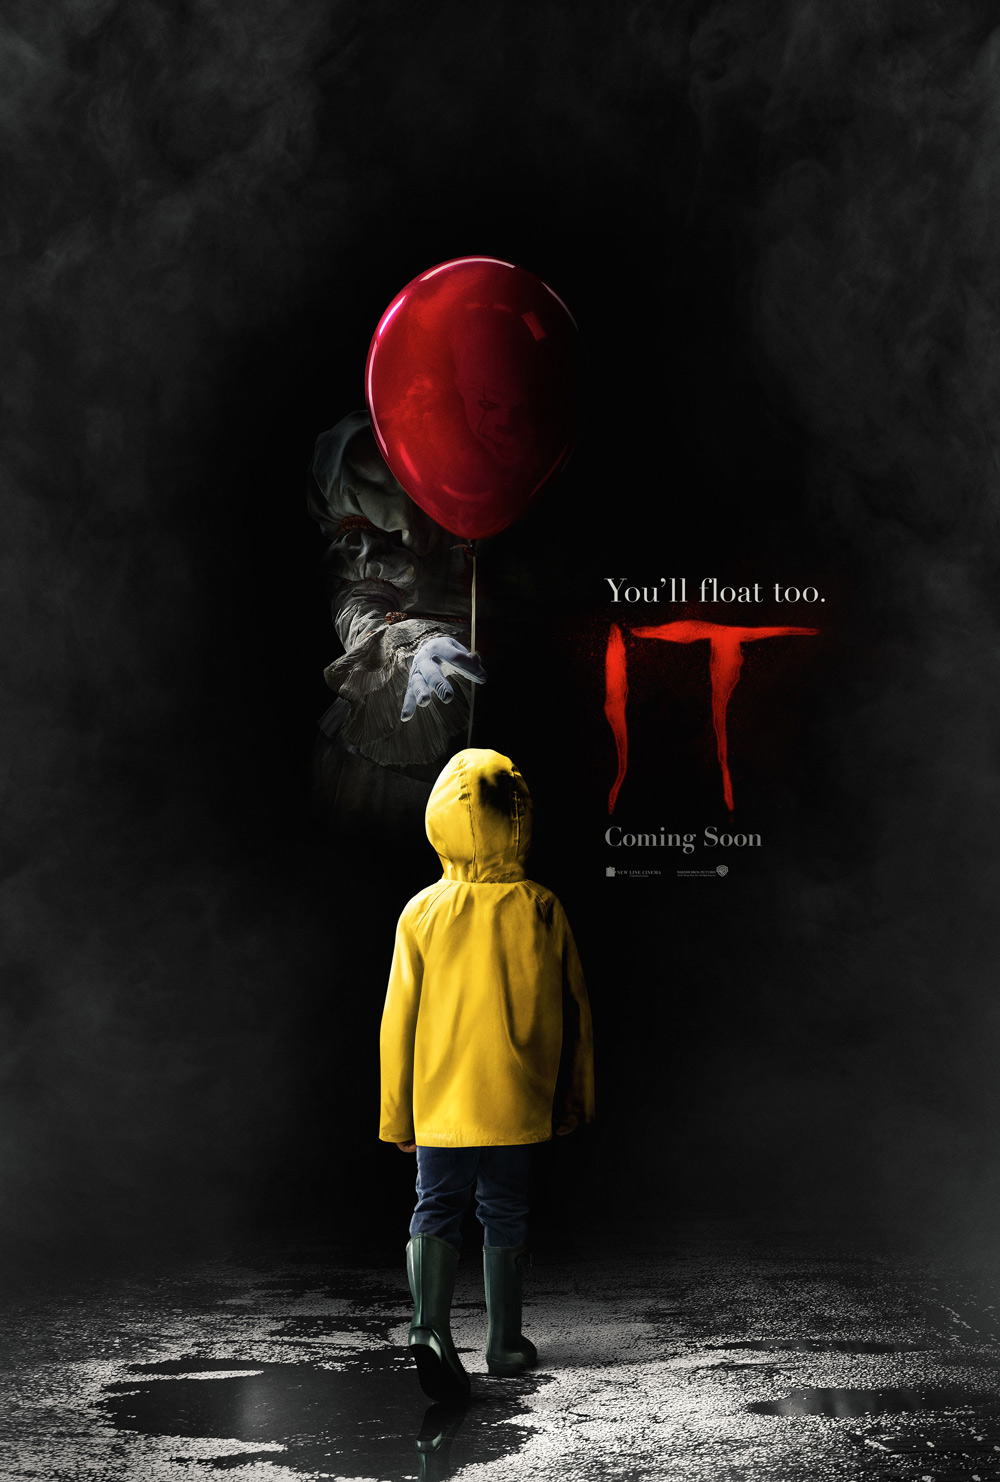 Trailer for IT Brings on  the Scares